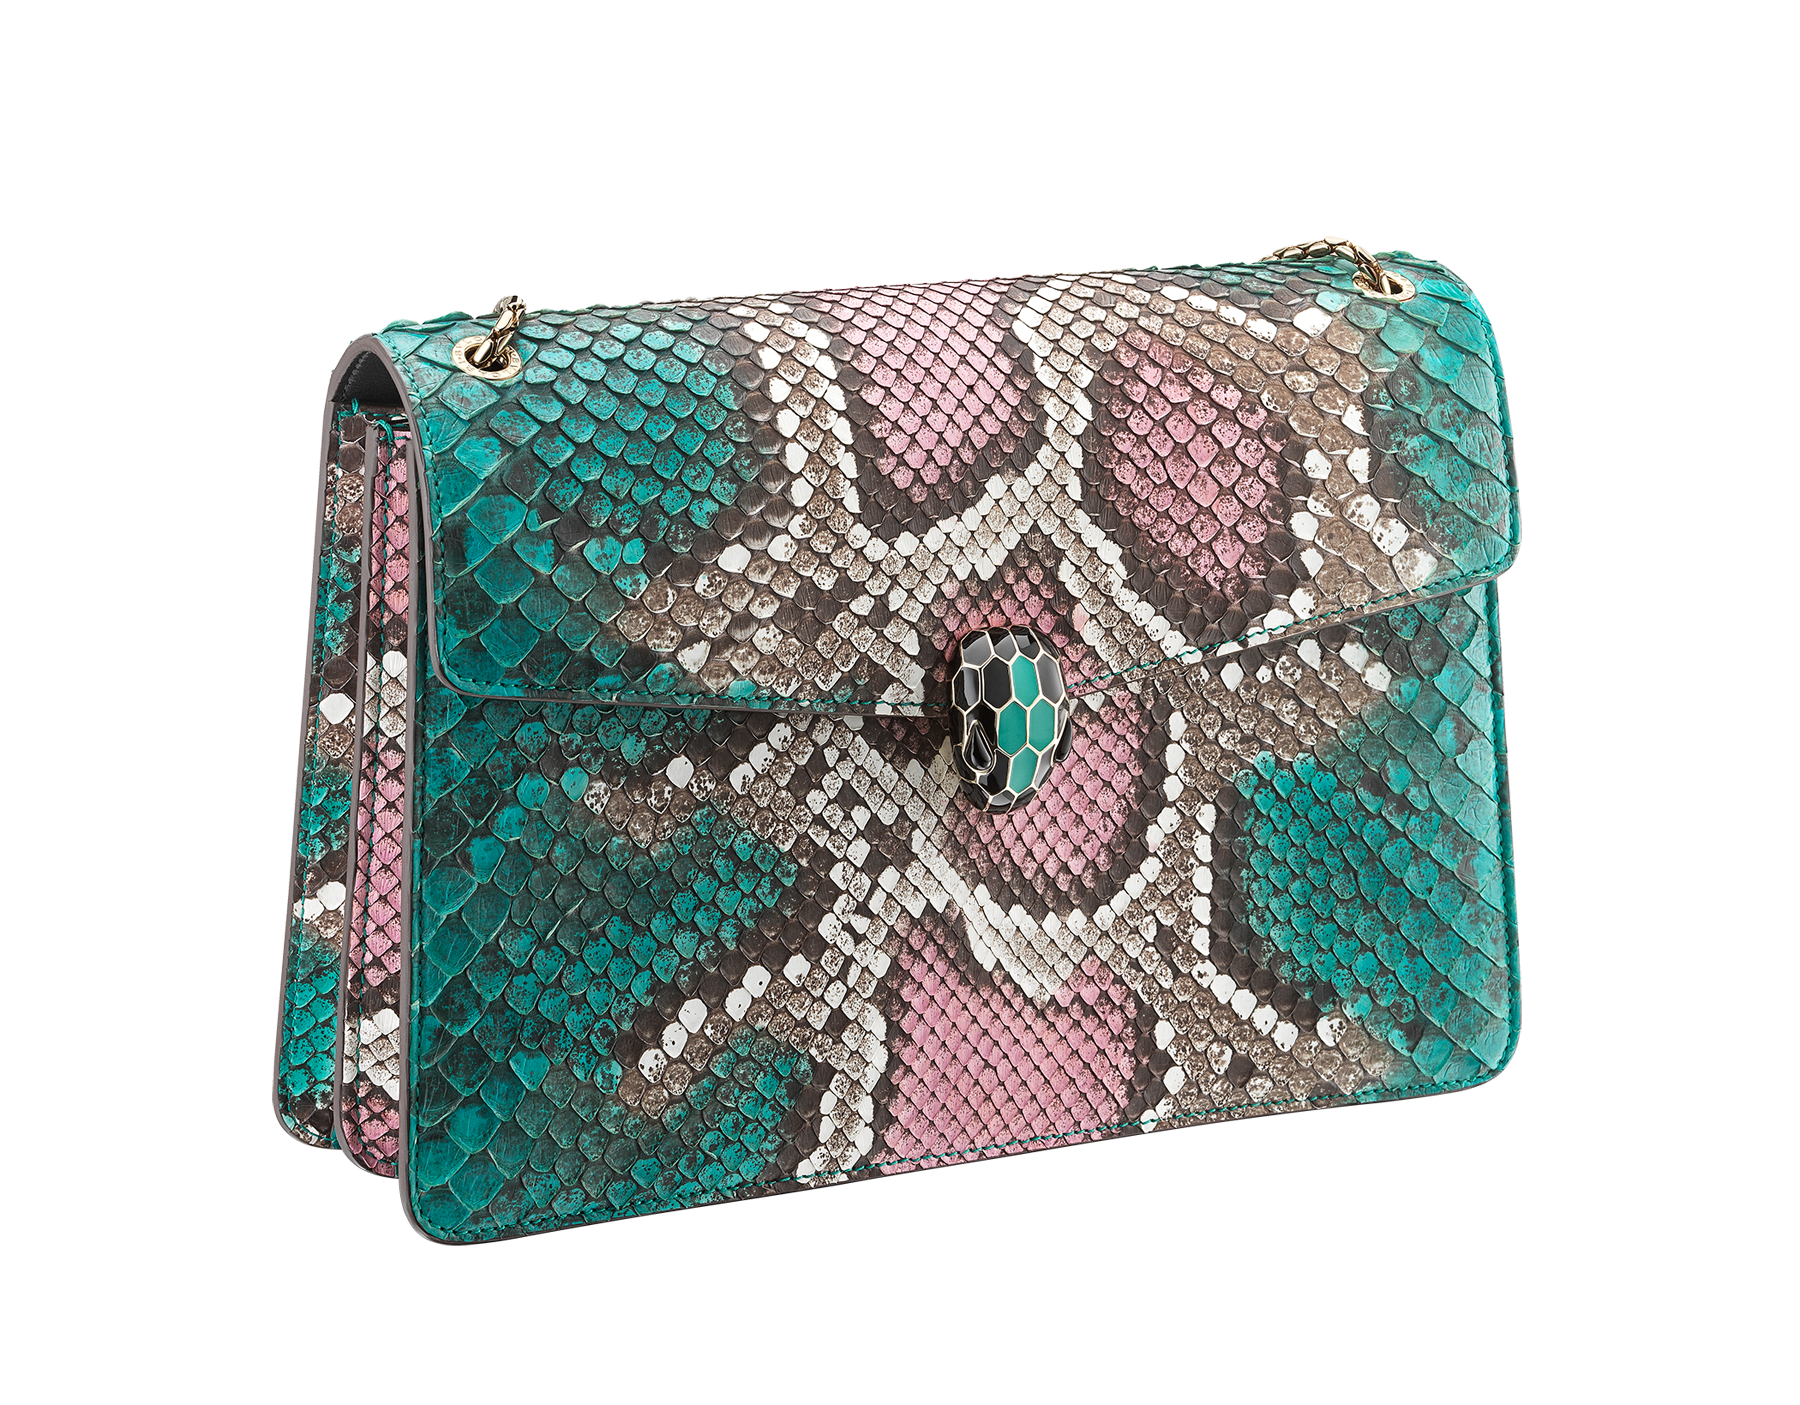 Serpenti Forever shoulder bag in arctic jade Psiche python skin. Iconic snakehead closure in light gold plated brass embellished with black and arctic jade enamel and black onyx eyes. 288939 image 2